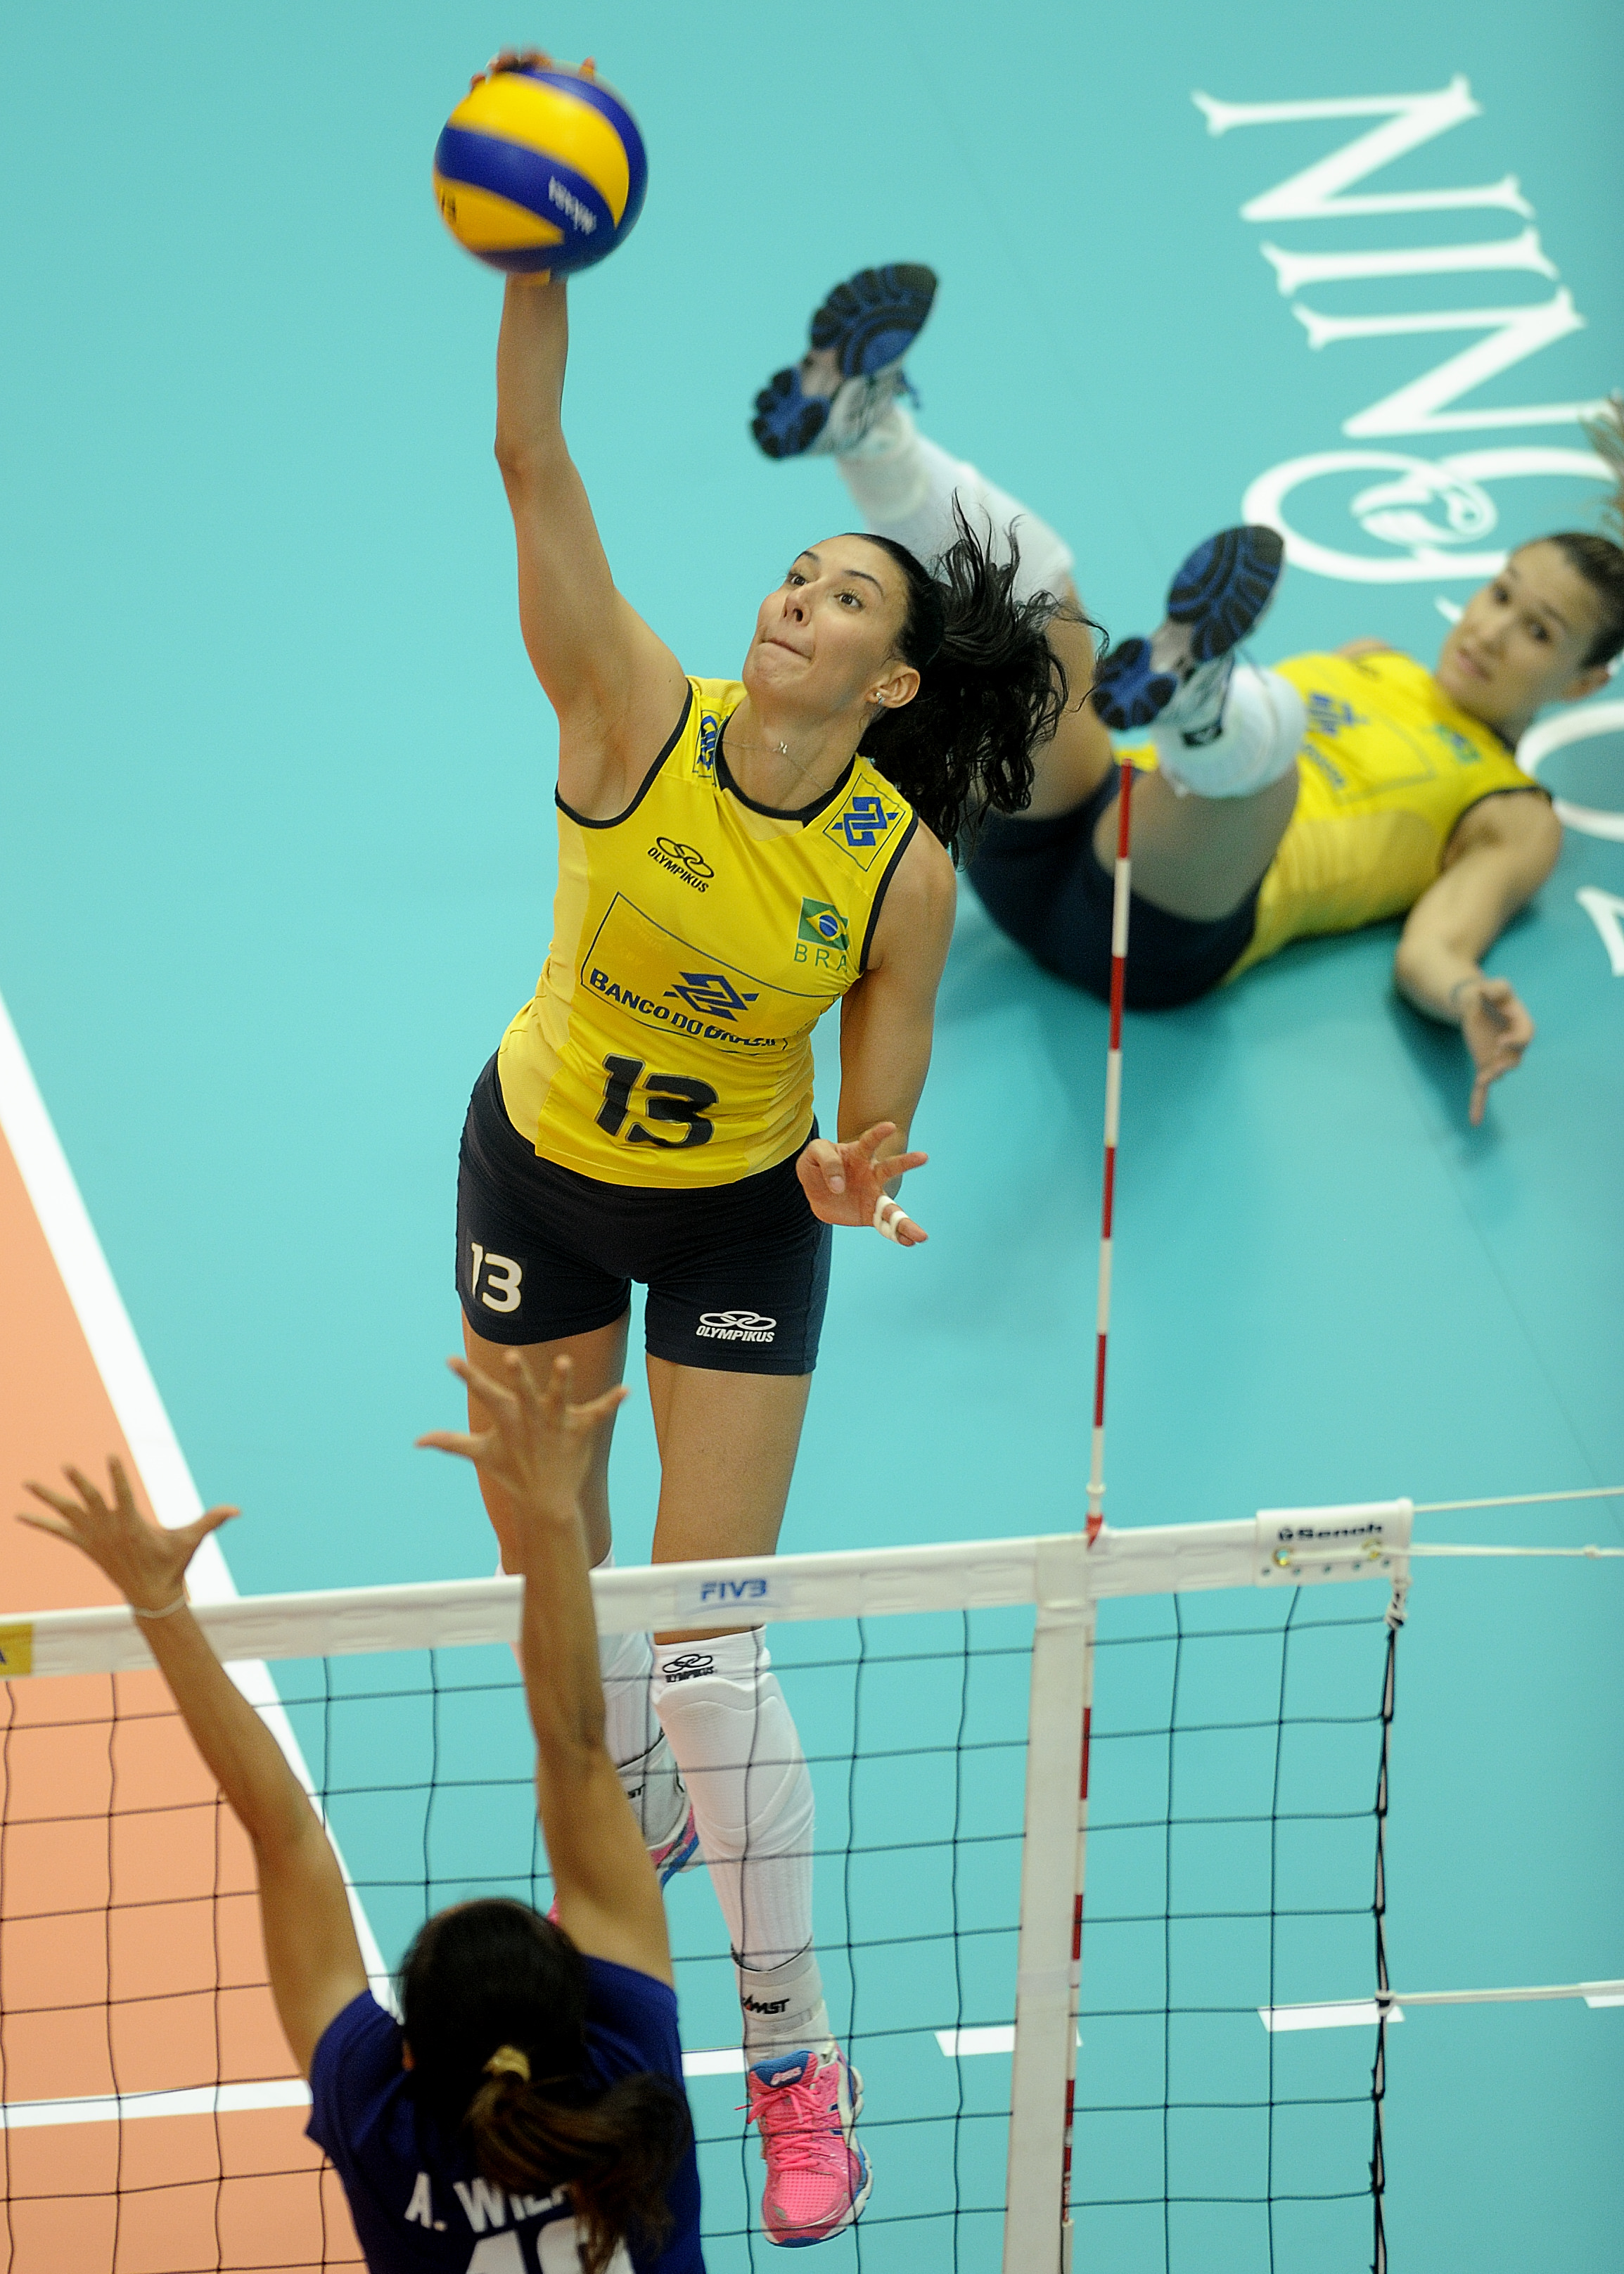 Wonderful safe from setter Fernanda Ferreira, Castro Sheilla spiking the Mikasa